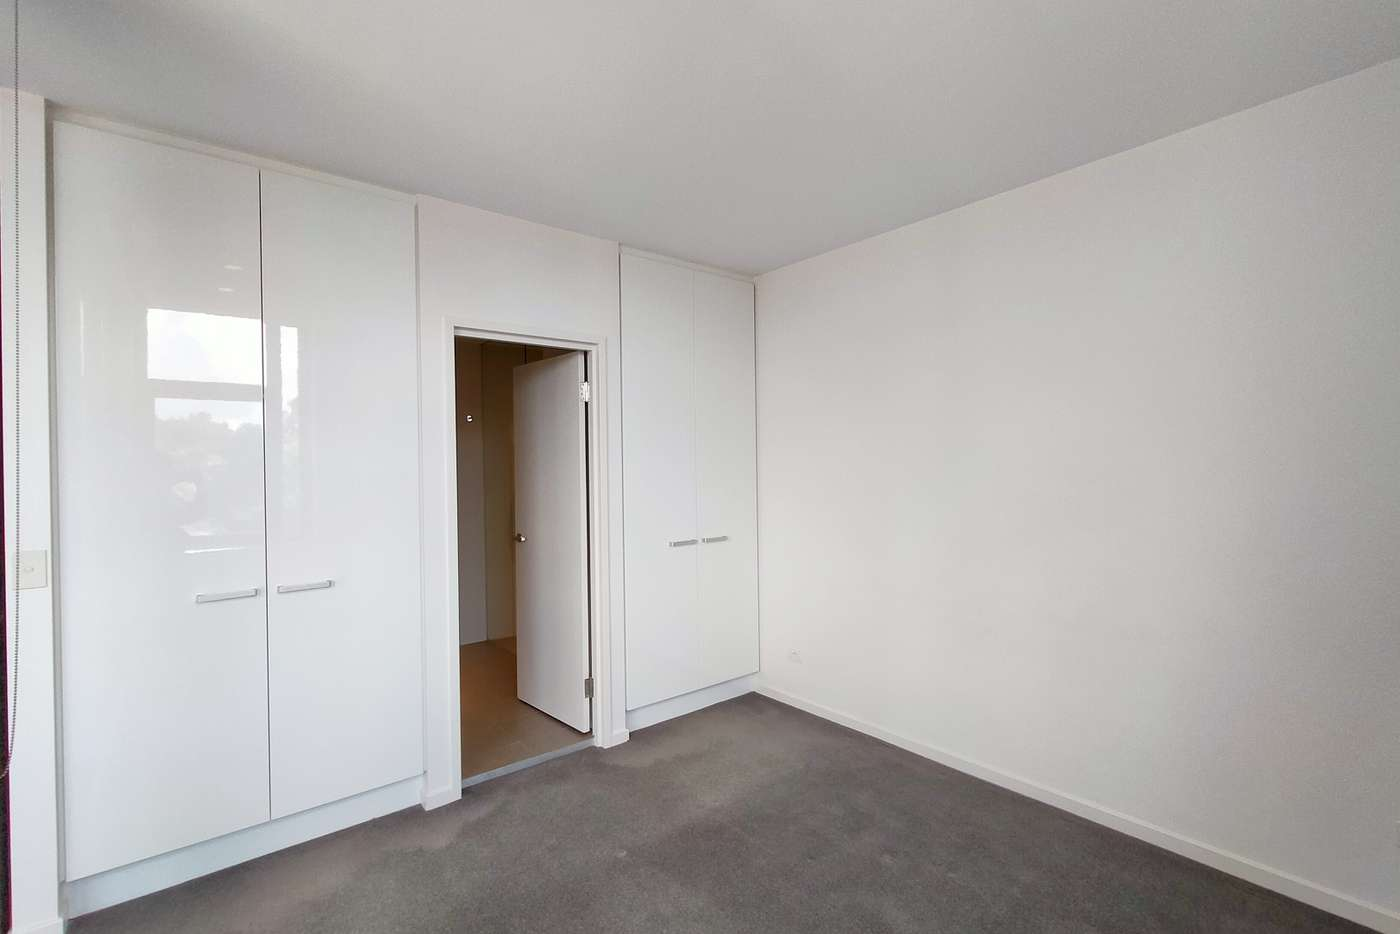 Sixth view of Homely apartment listing, 602B/3 Broughton St, Parramatta NSW 2150